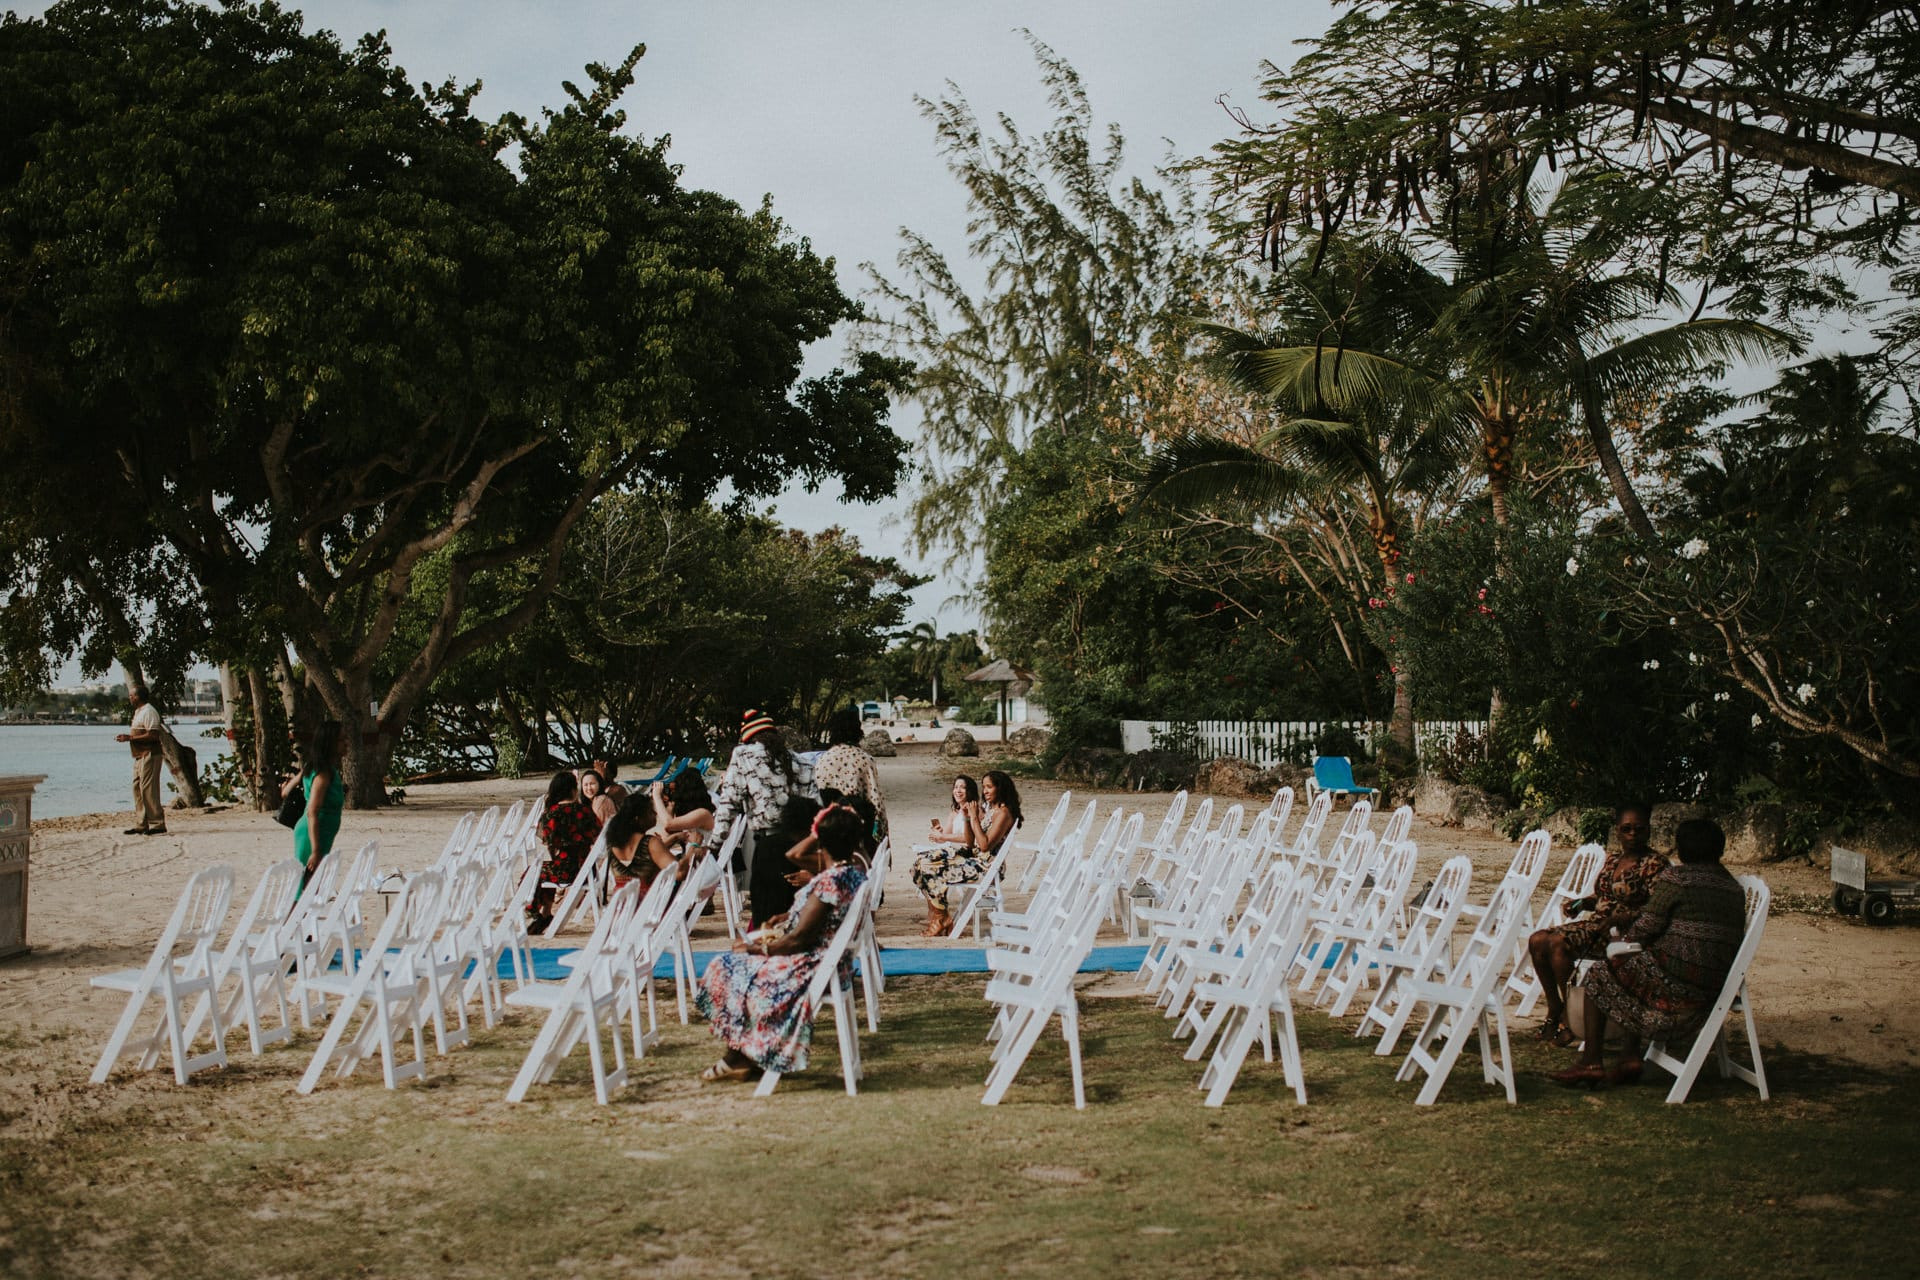 Wedding guests are sitting on chairs at the beach.